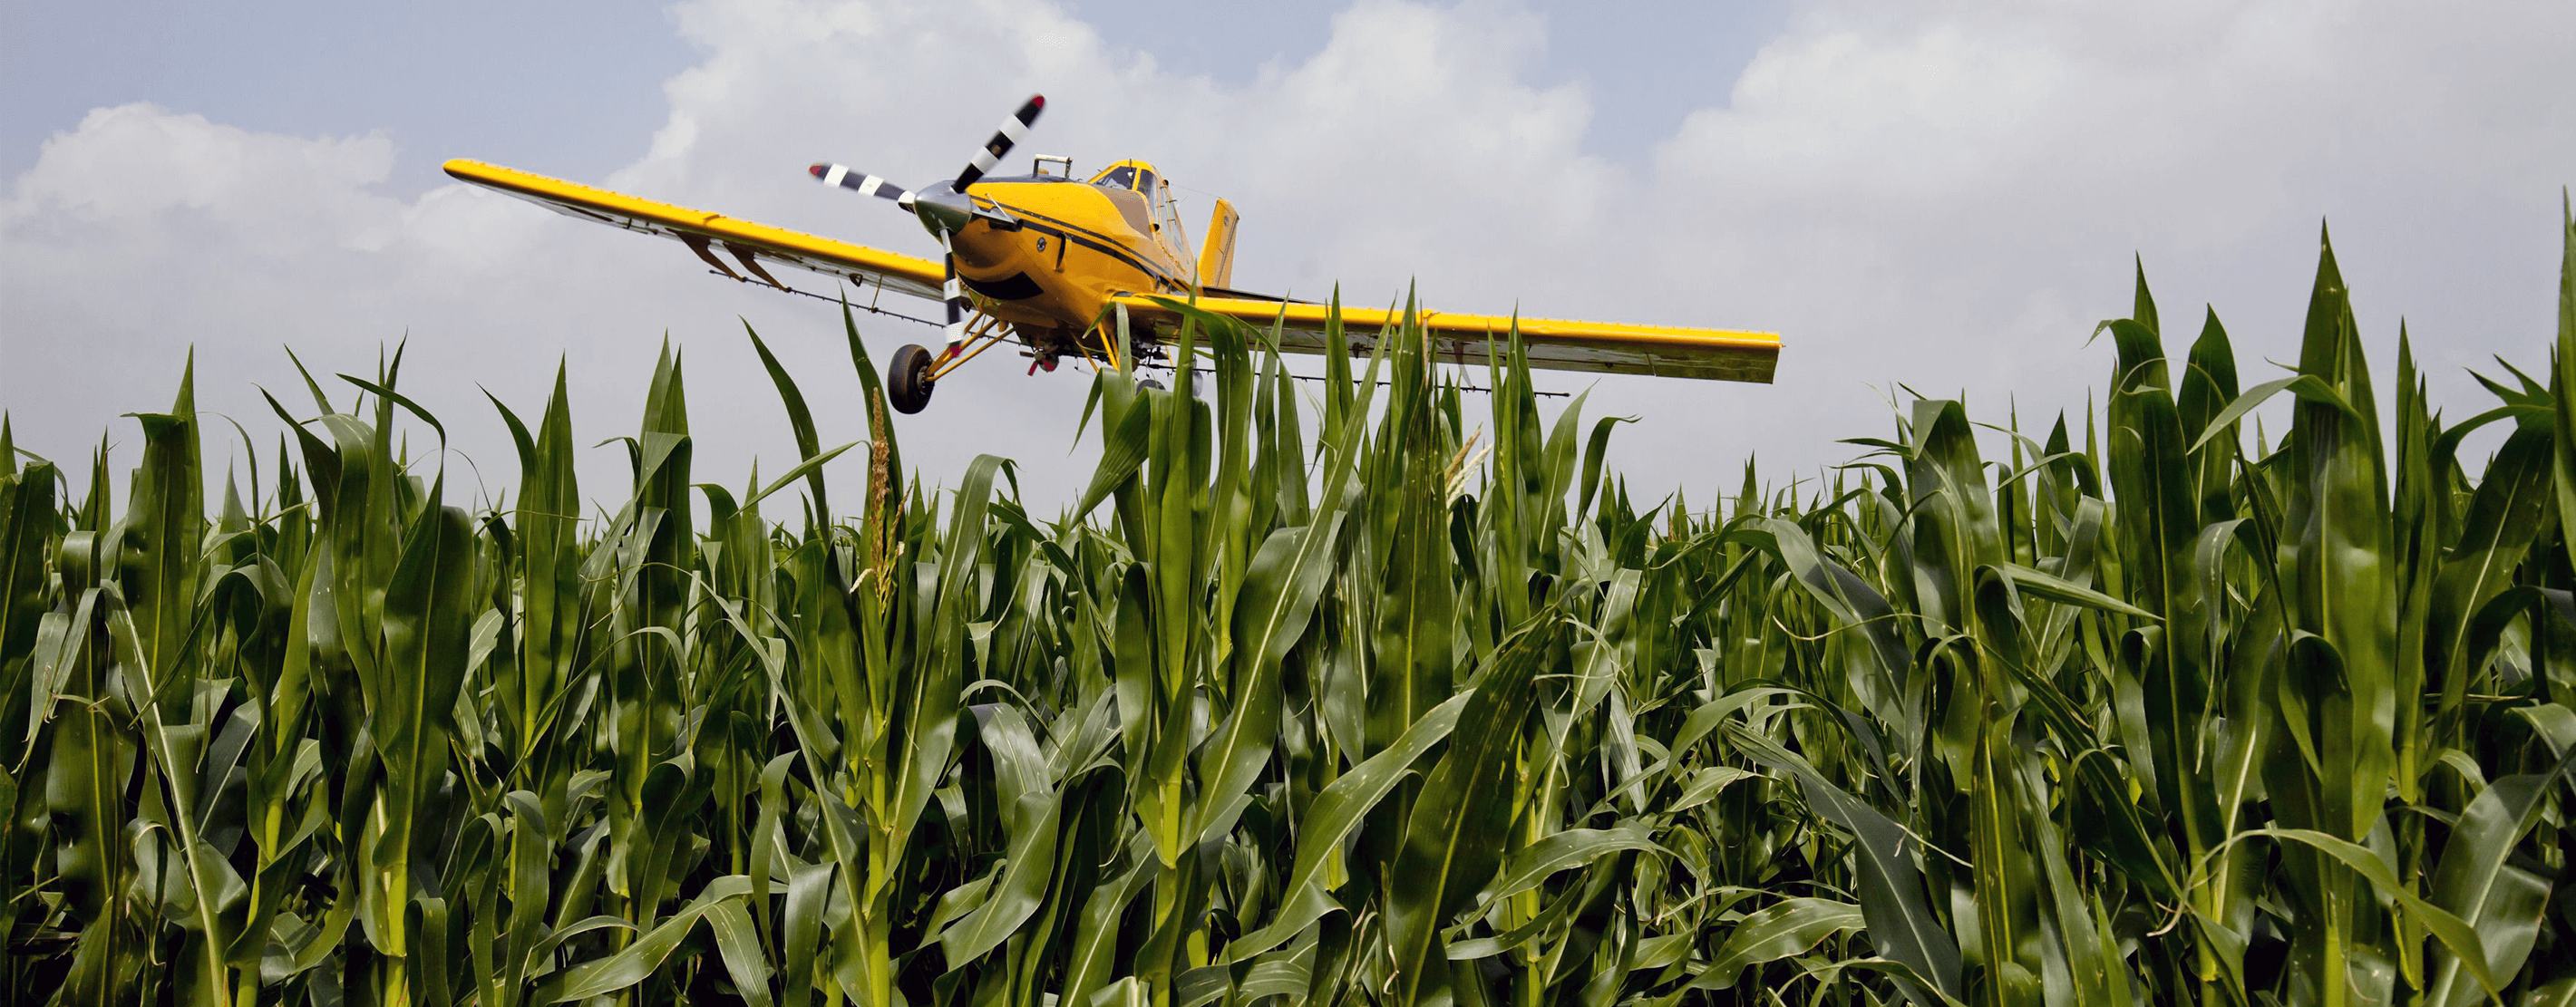 Crop Dusting Plane Flying Over Corn Field